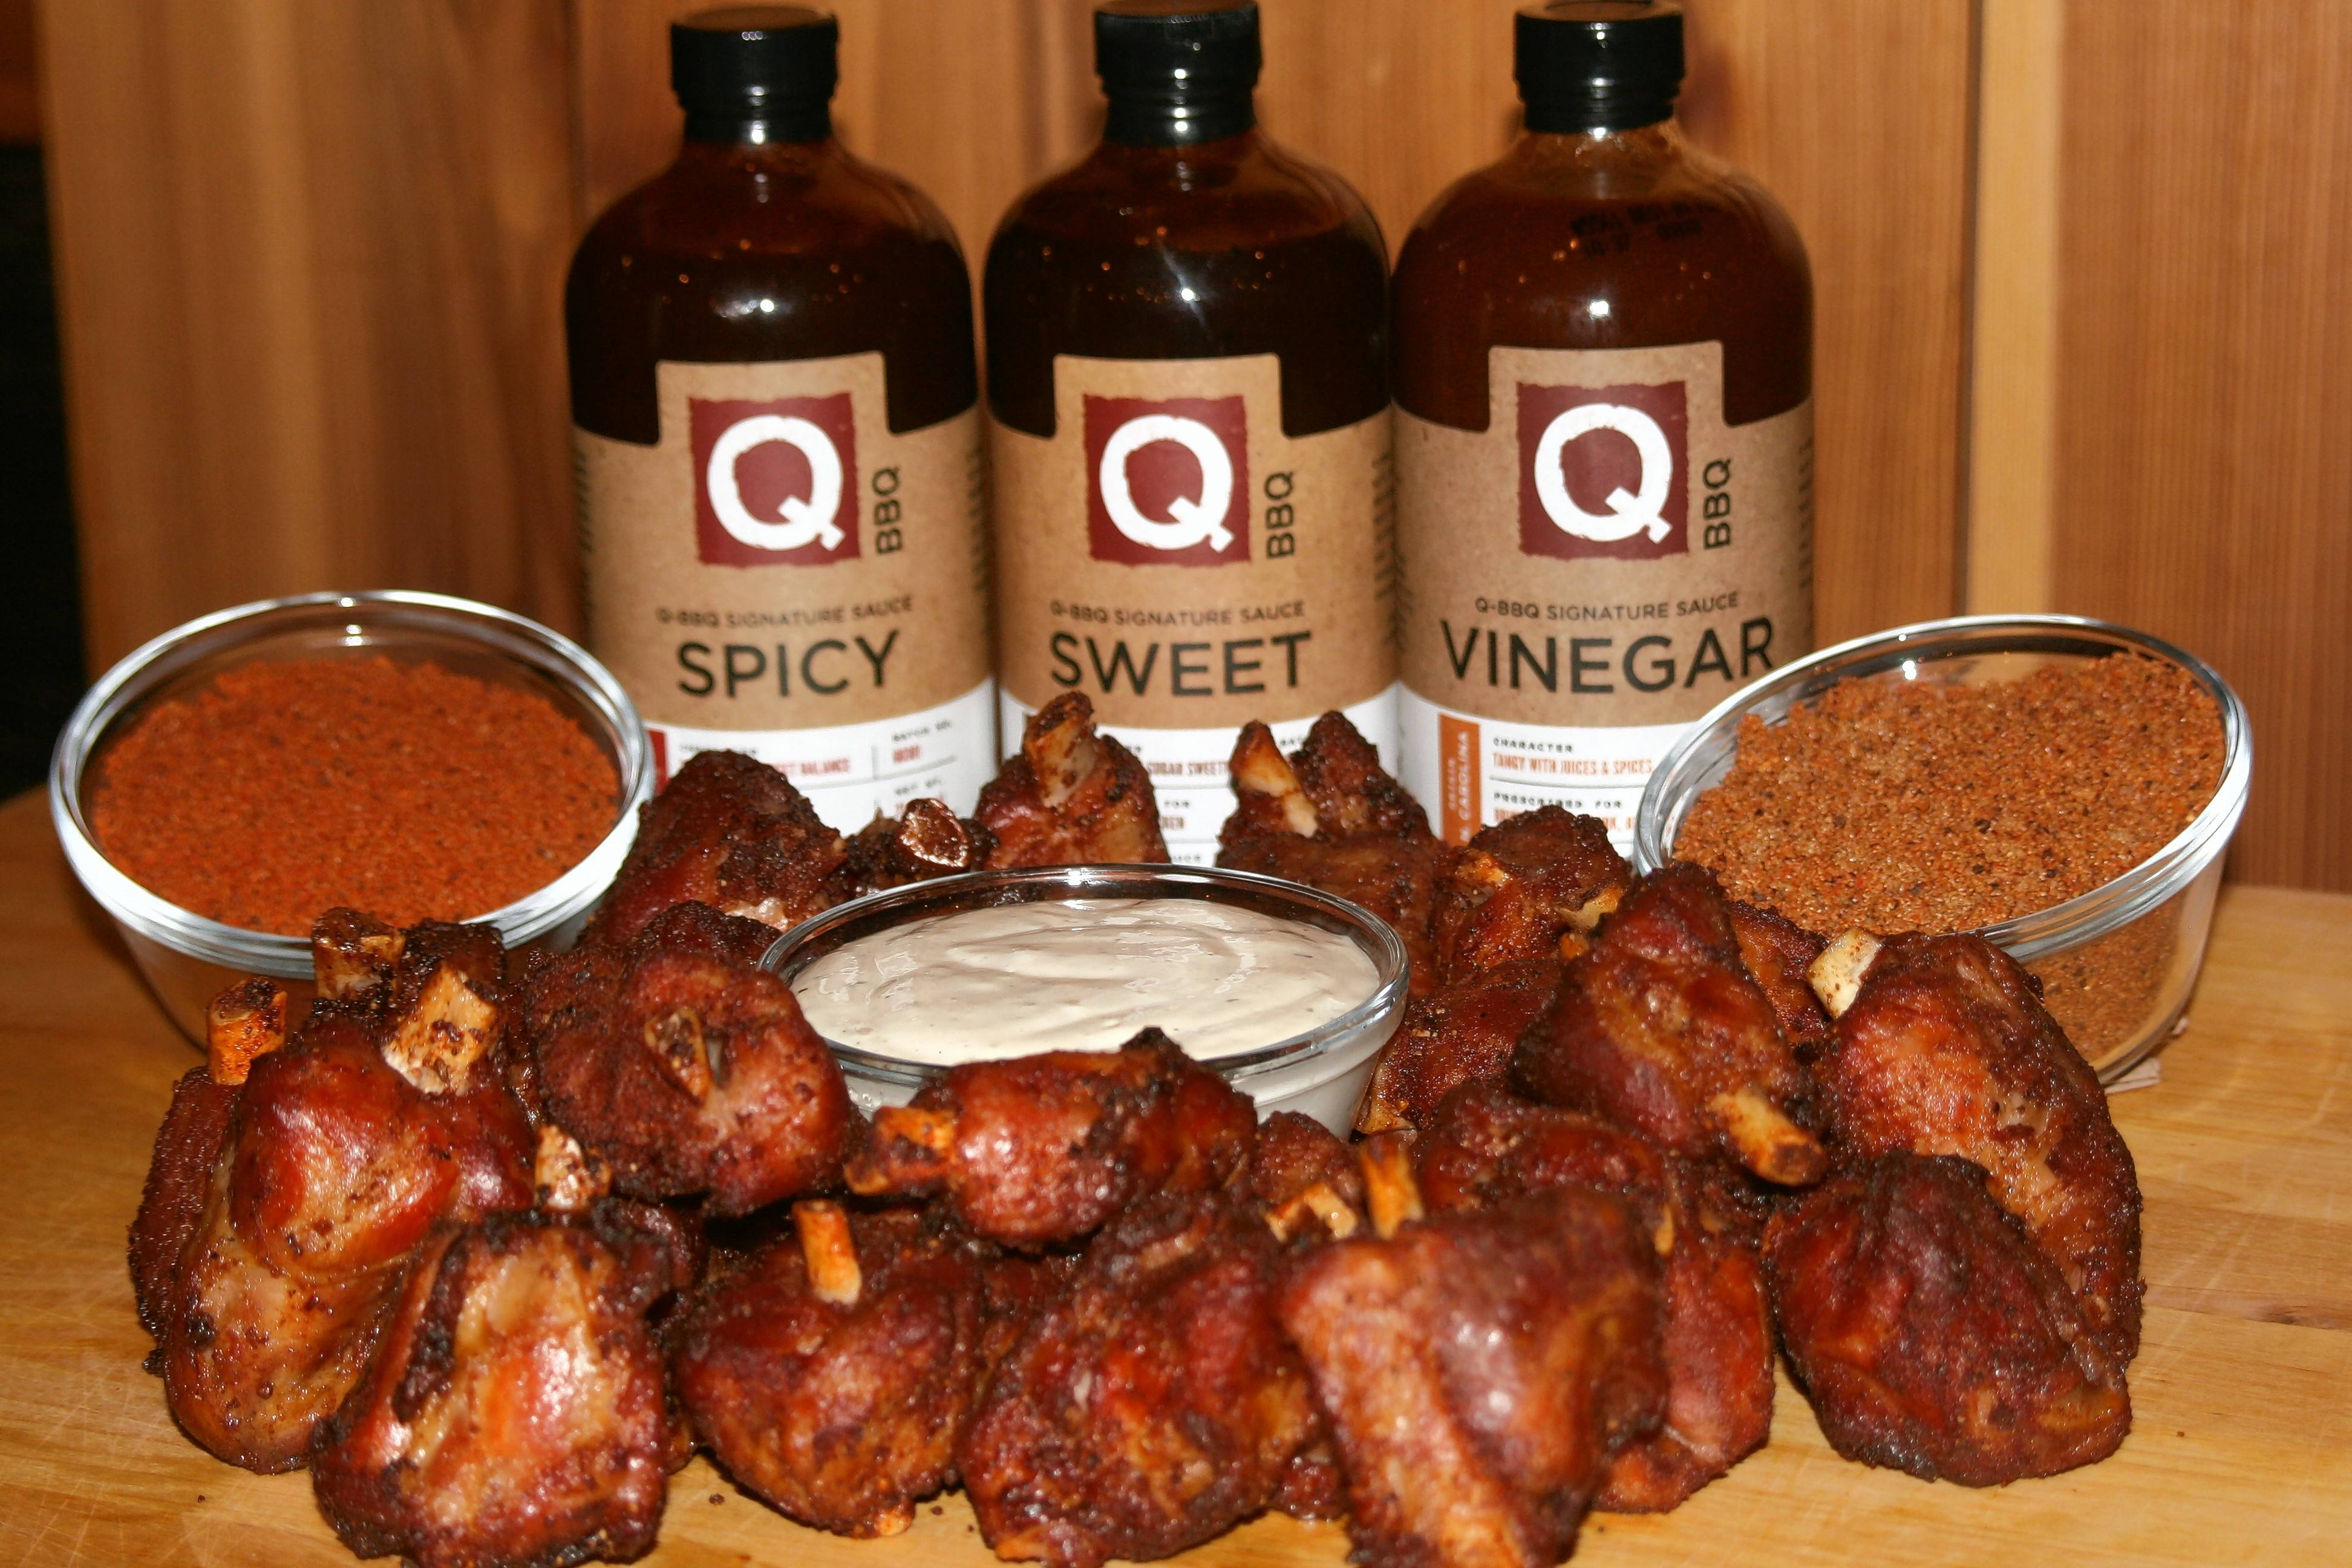 Q-BBQ will be selling hickory-smoked pork wings on the weekends from Friday, Jan. 4, through Super Bowl Sunday, Feb. 3.